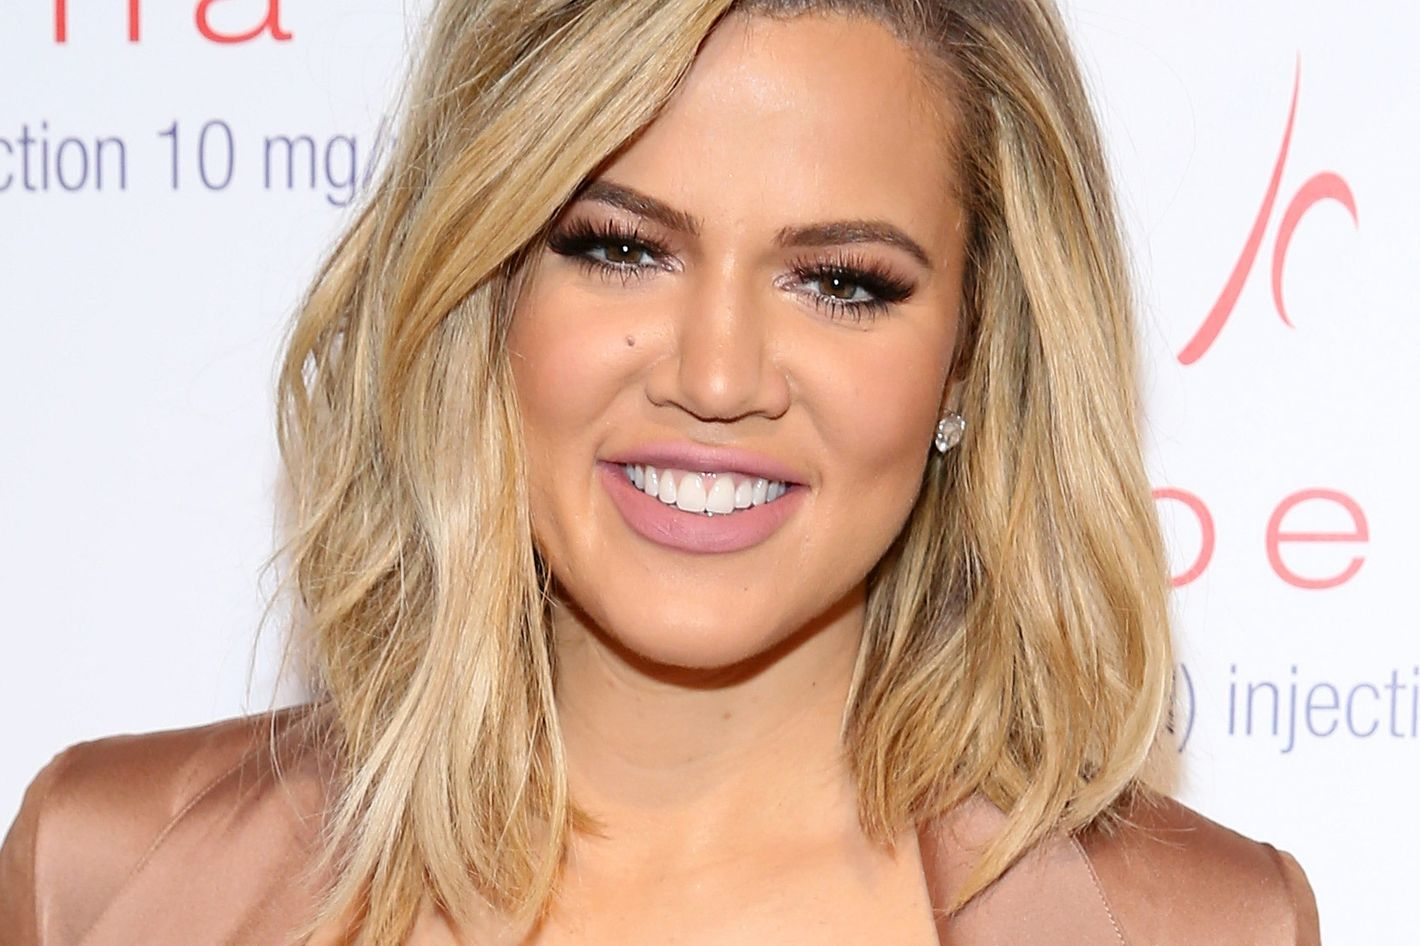 The One Thing Khloe Kardashian Hates To Talk About